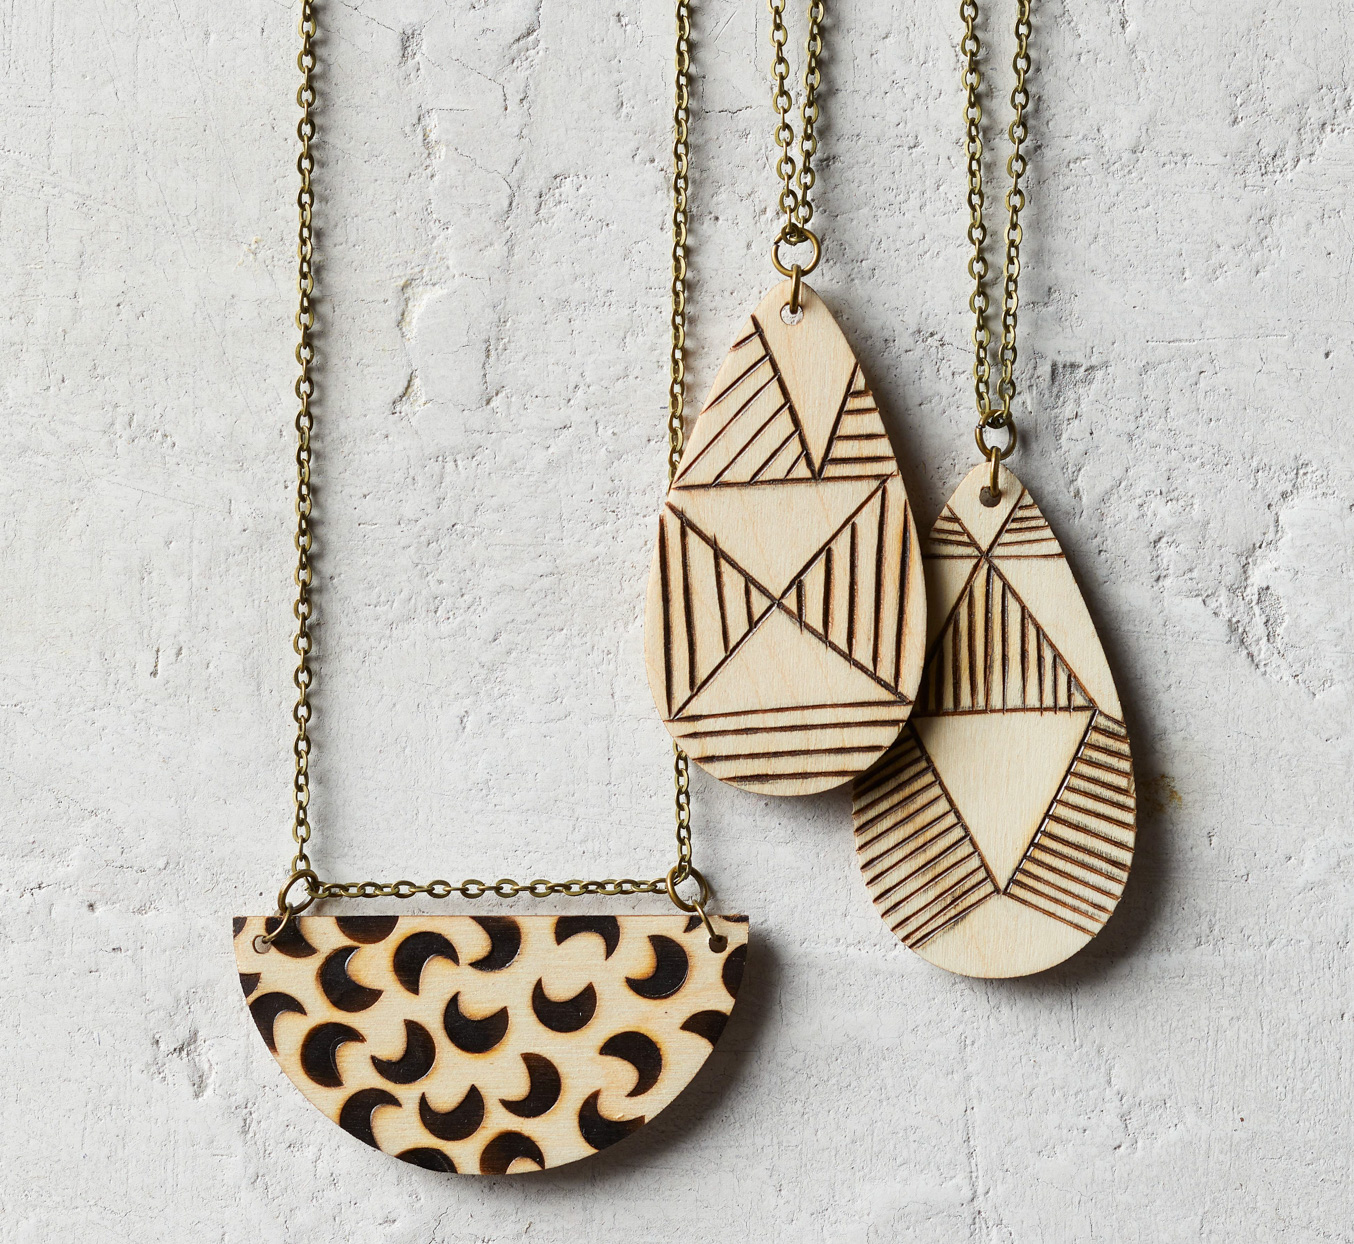 wooden carved necklaces on chains